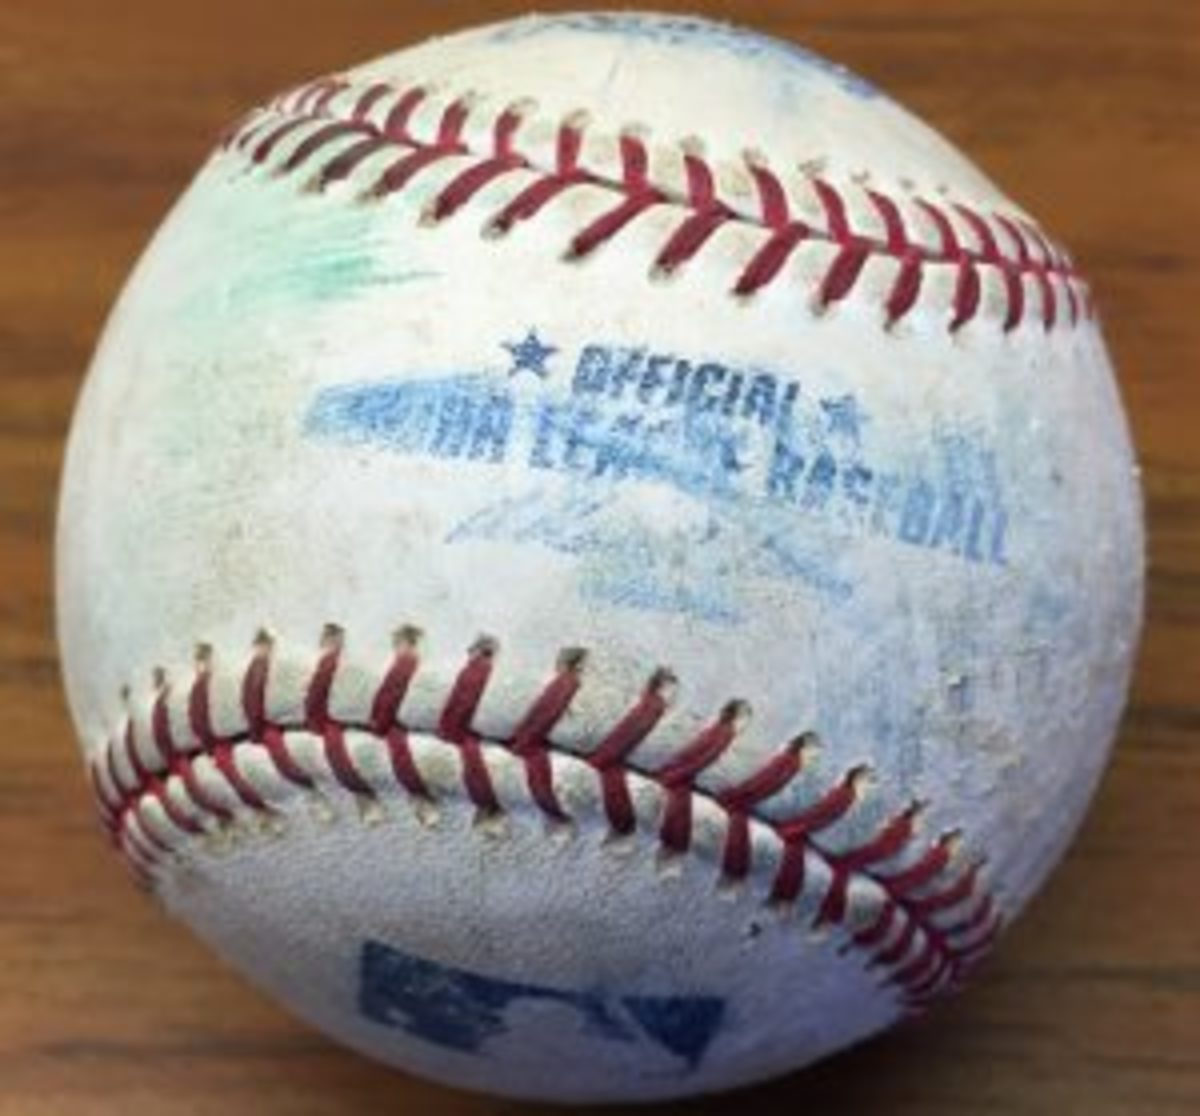 This baseball was thrown by former Milwaukee Brewers pitcher Ben Sheets into a grass parking area at Spring Training in 2007.